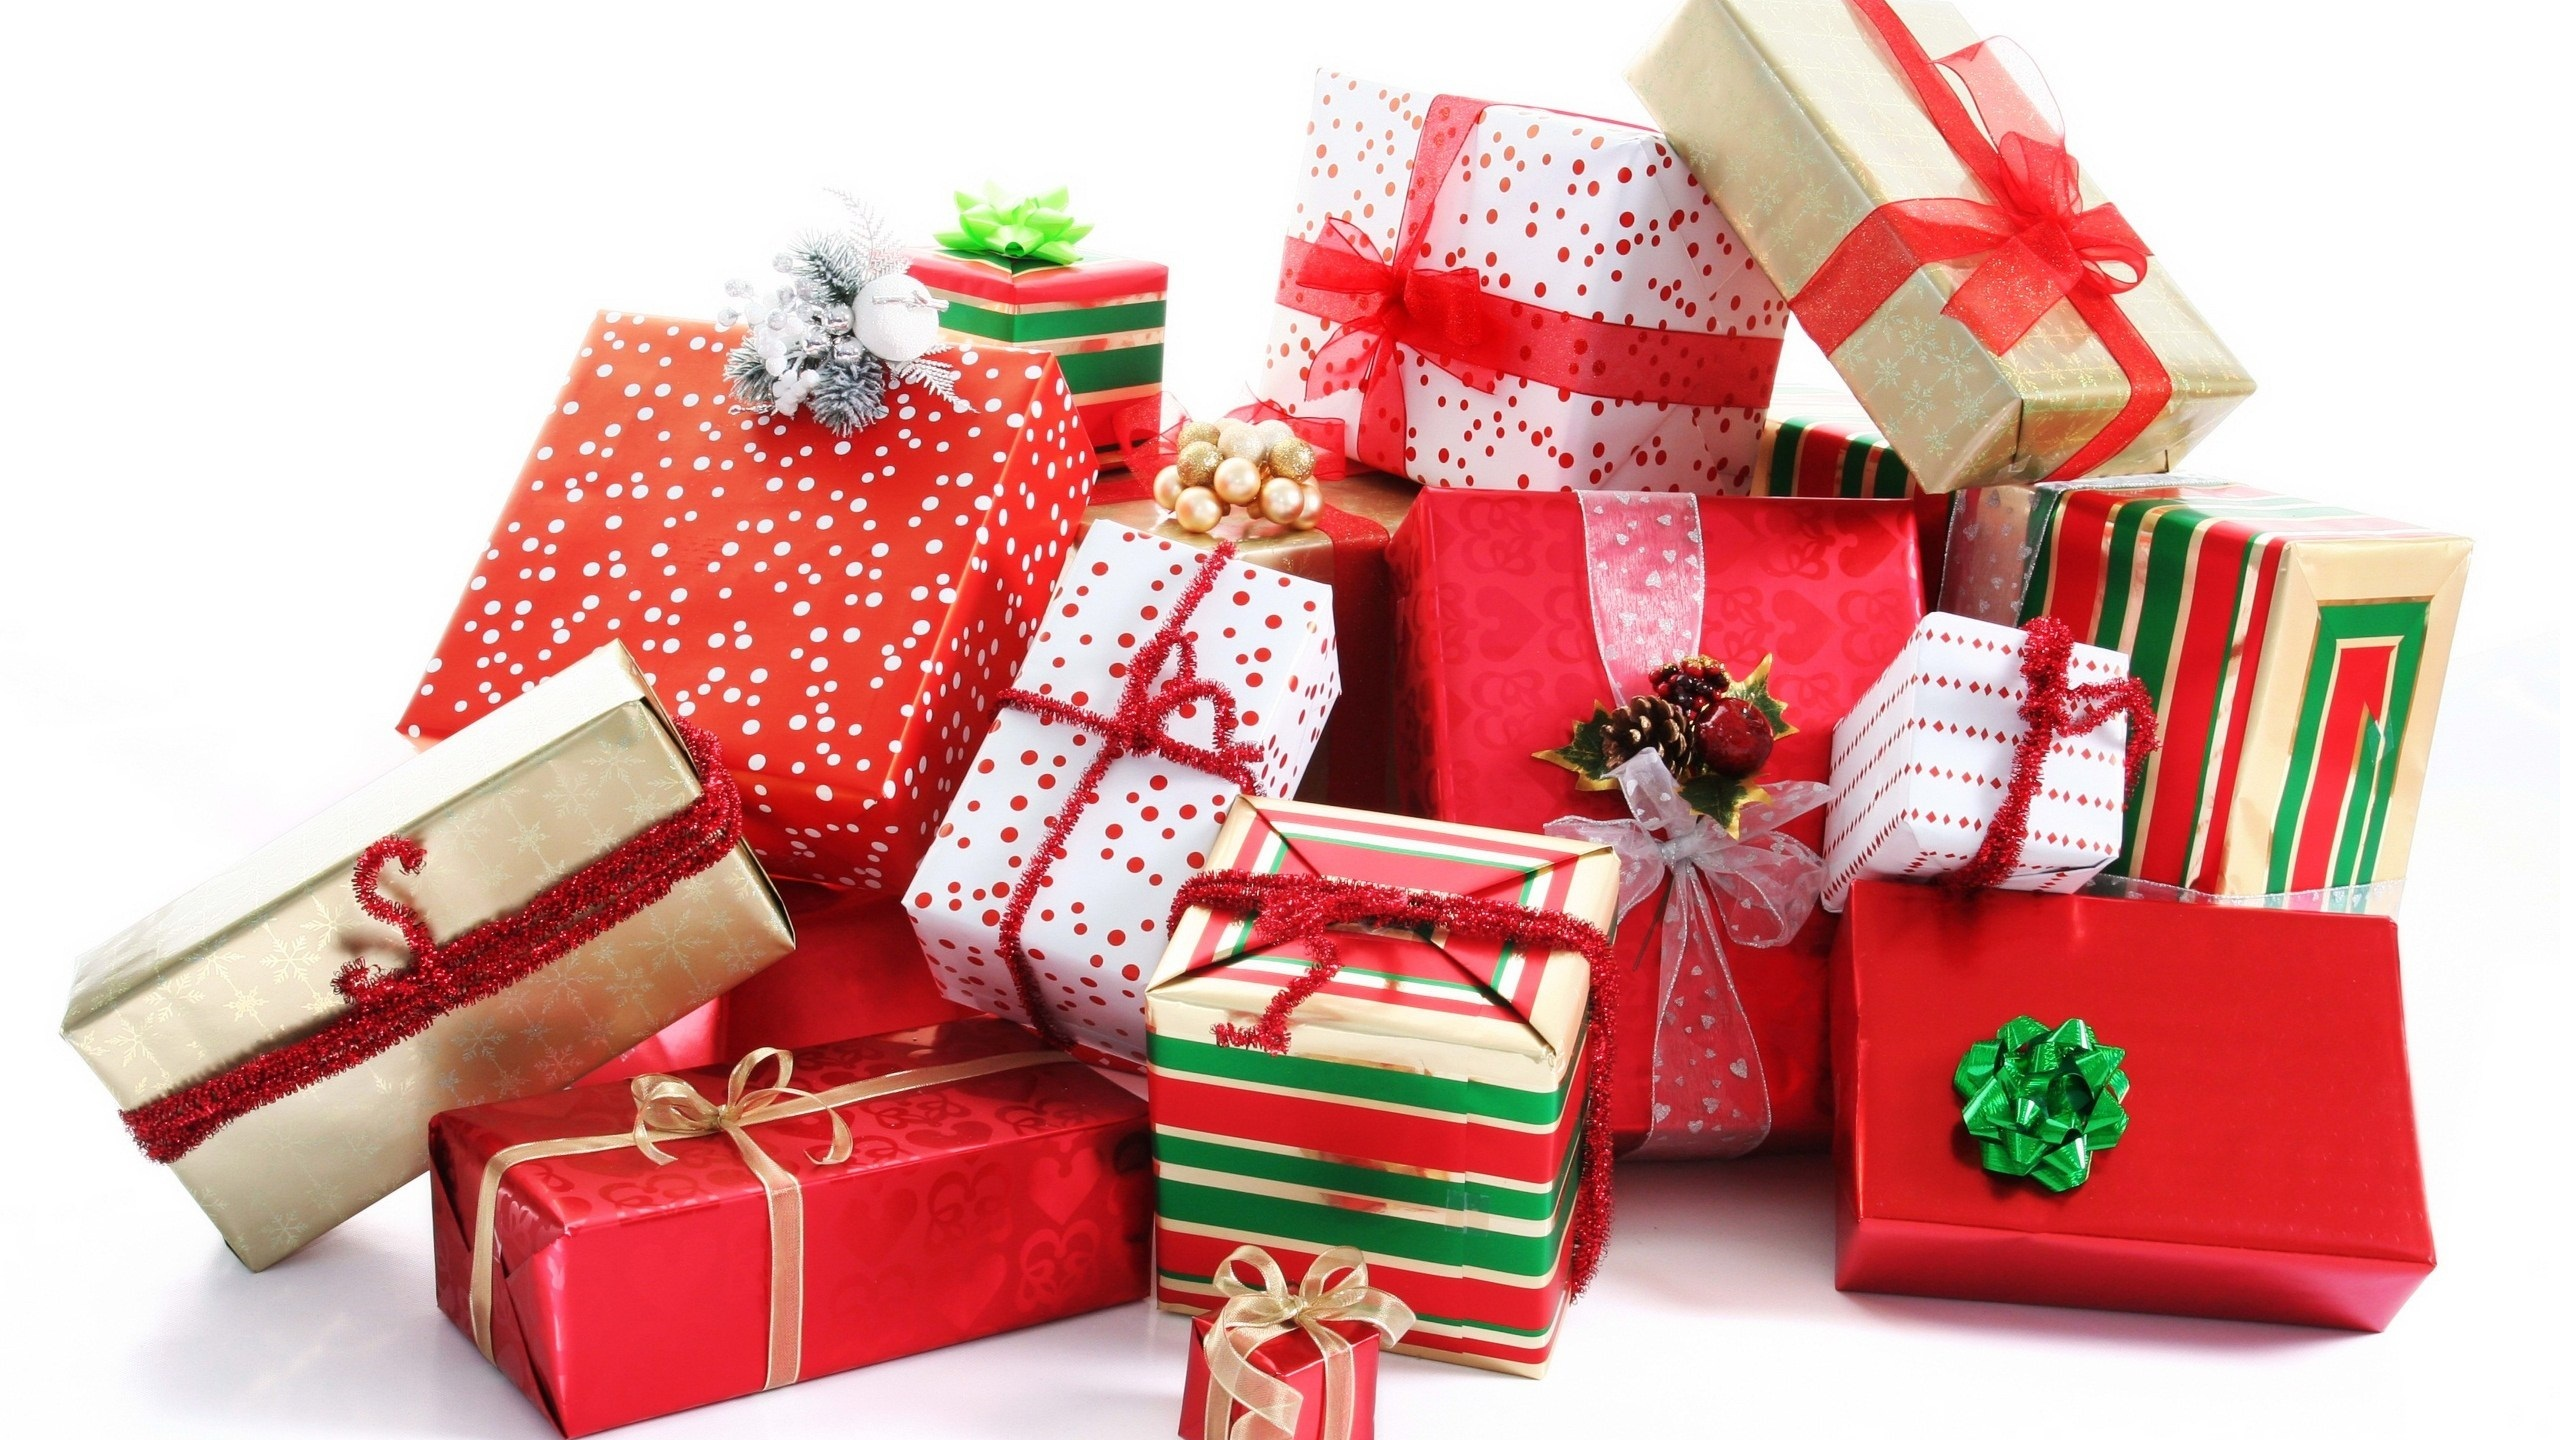 Christmas Gift Packages.Scdc Announces Plans For Christmas Packages For Prisoners